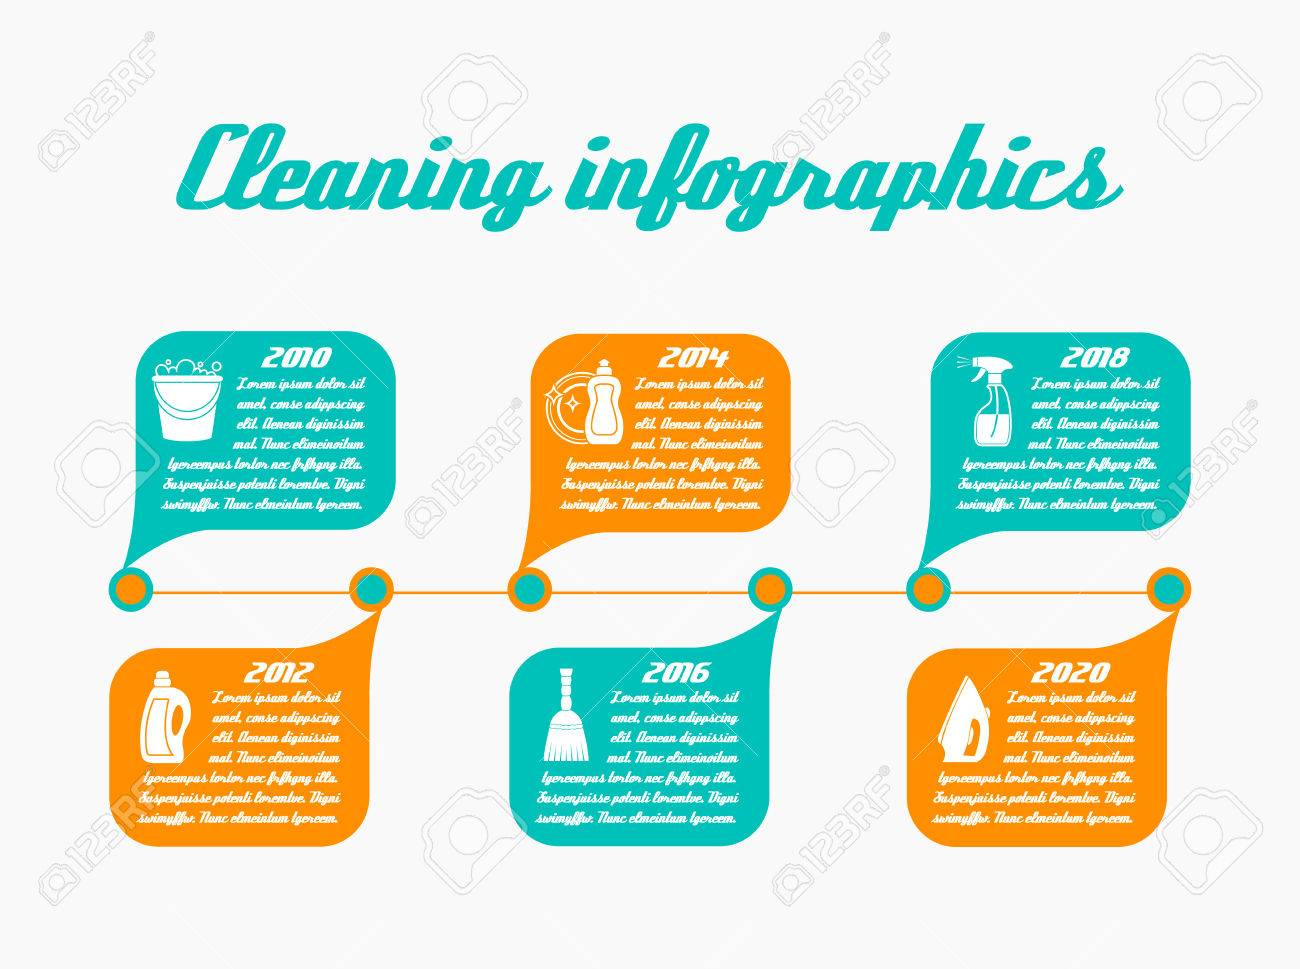 29817830-timeline-business-infographic-w